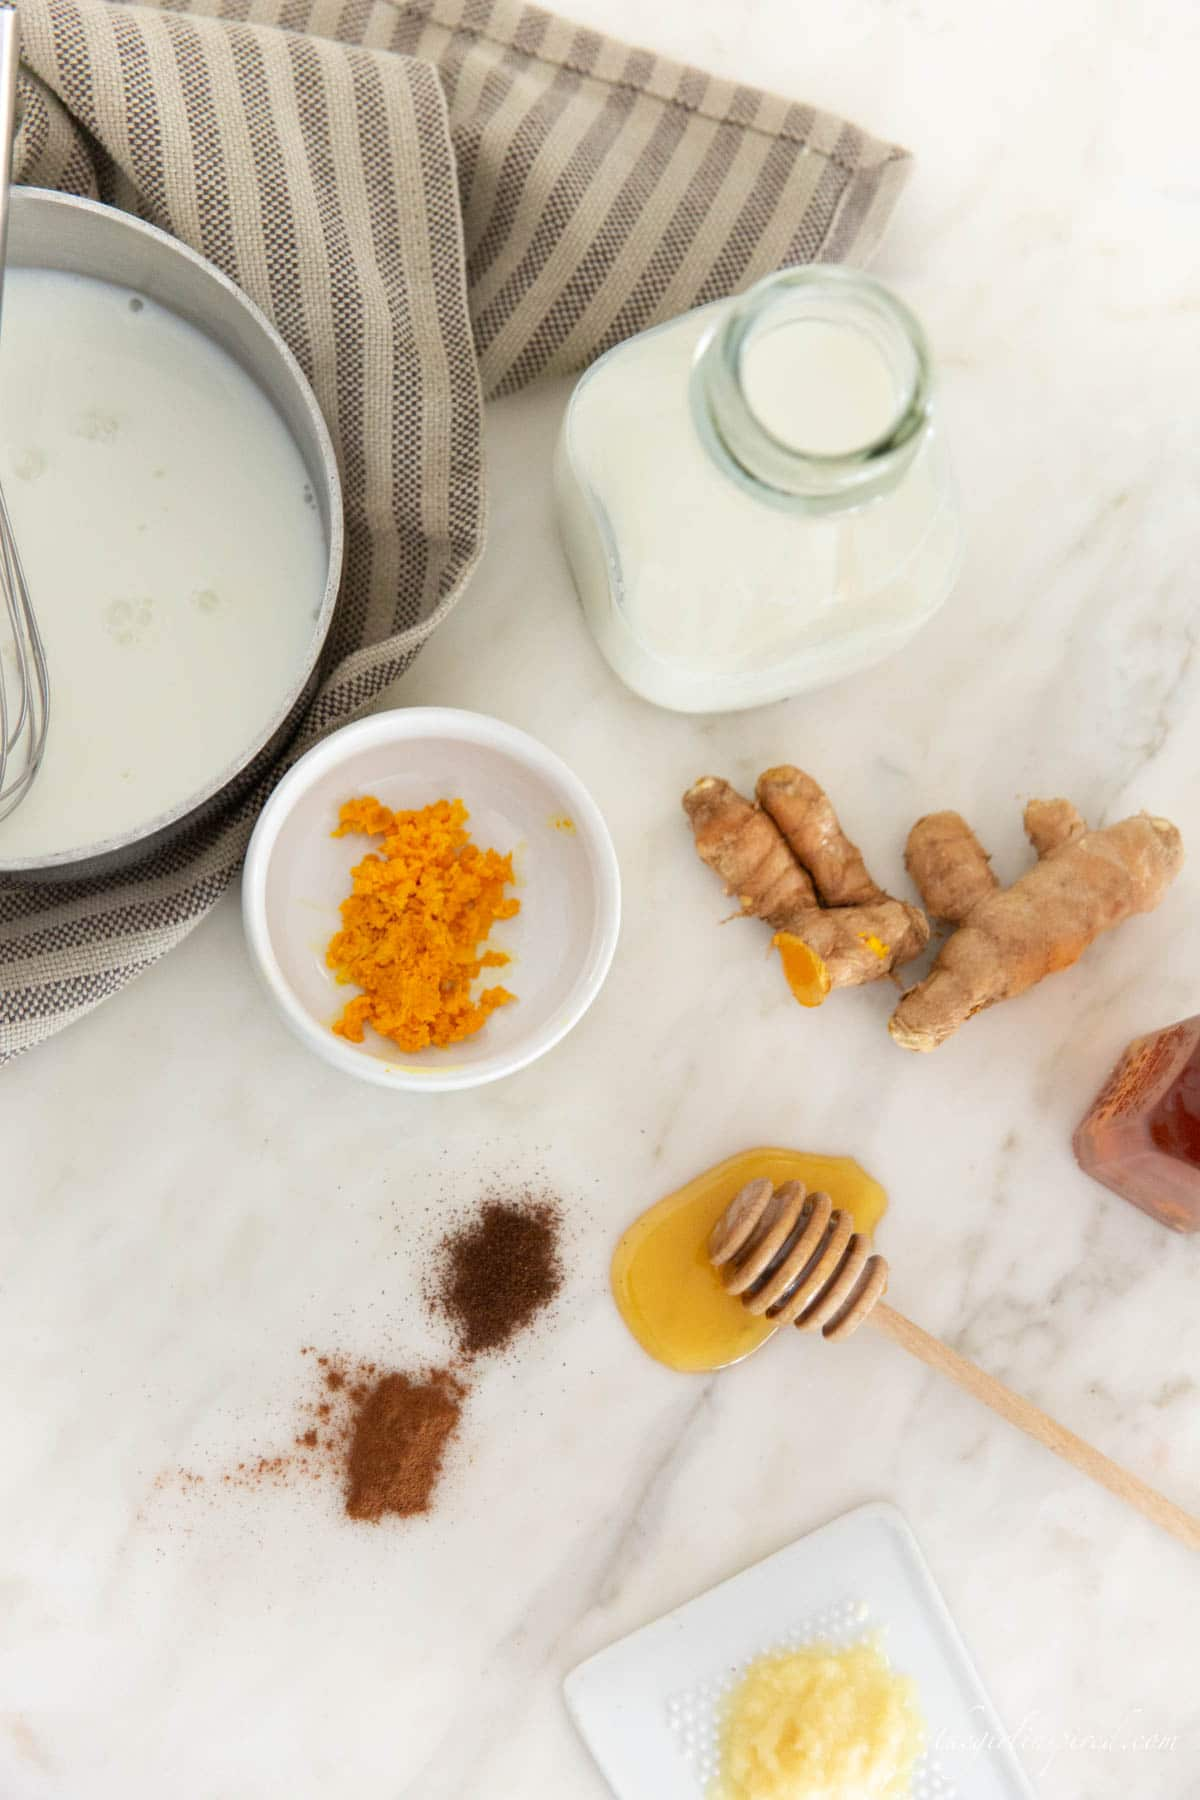 ingredients including grated and whole turmeric, honey, cinnamon and clove spices, a glass jar of milk, dish towel and saucepan with milk and a whisk